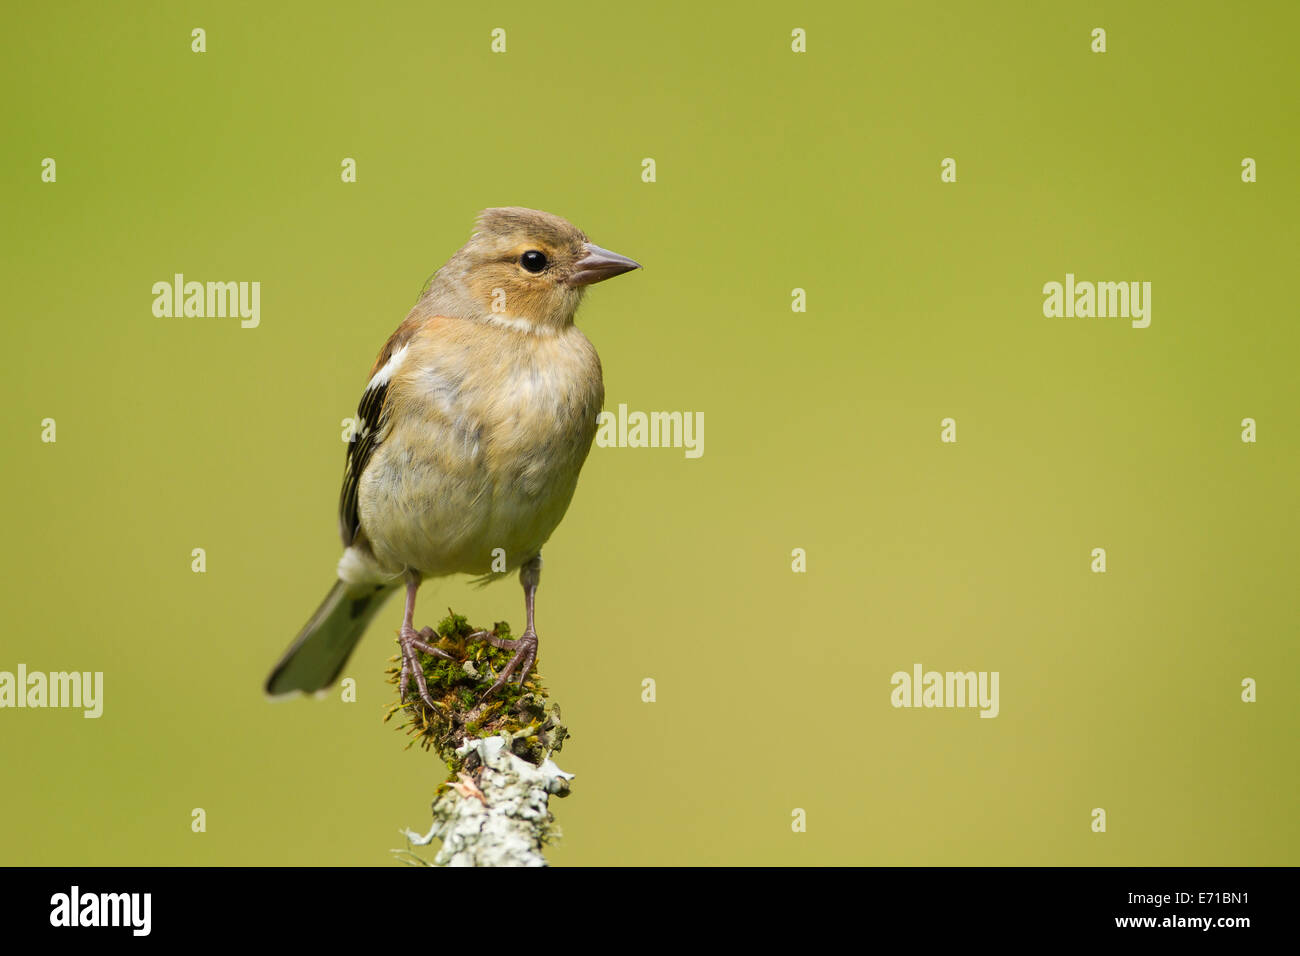 Juvenile Male Chaffinch (Fringilla coelebs) - UK - Stock Image